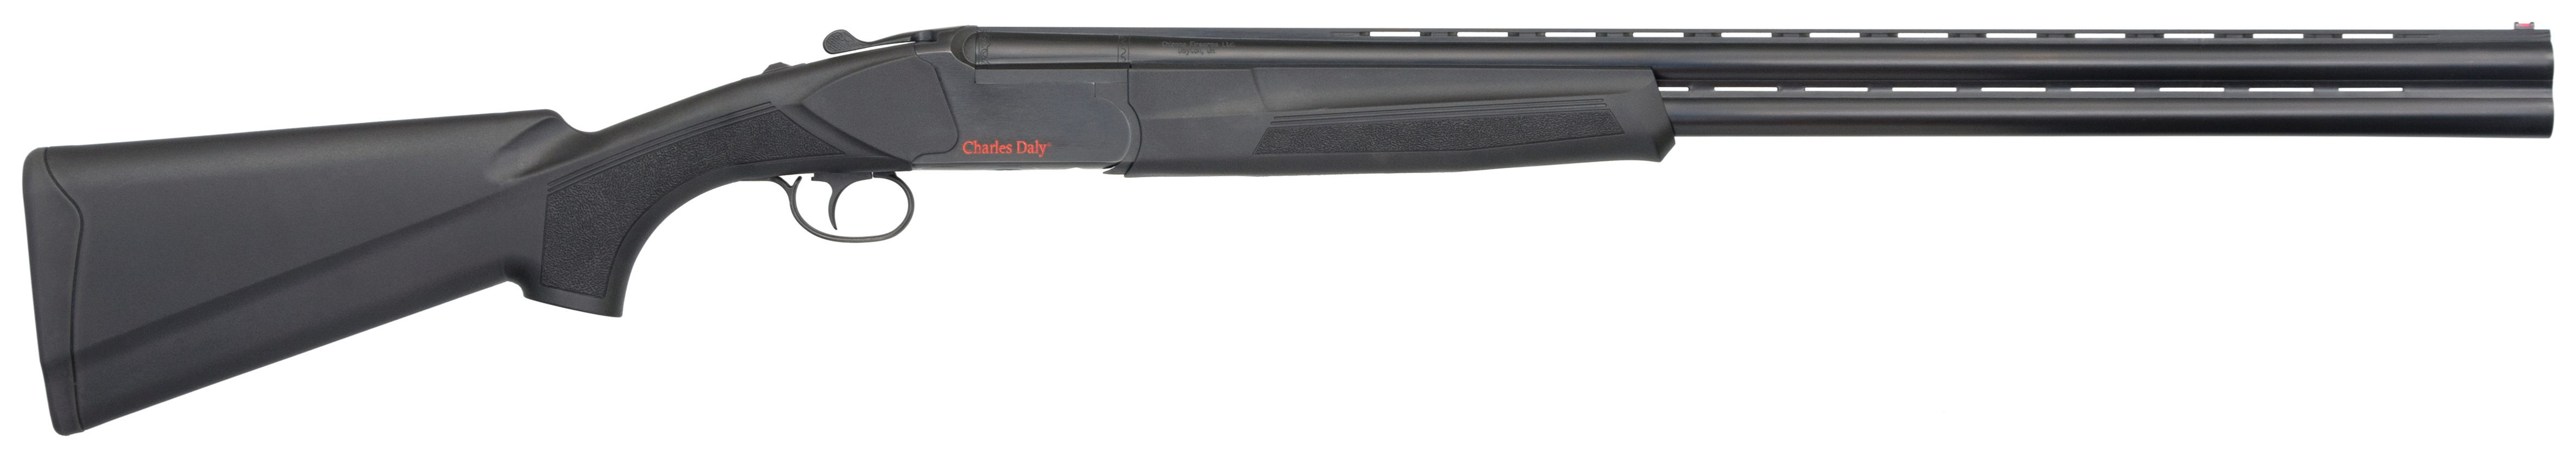 Charles Daly Chiappa 930130 202   Over/Under 12 Gauge 28